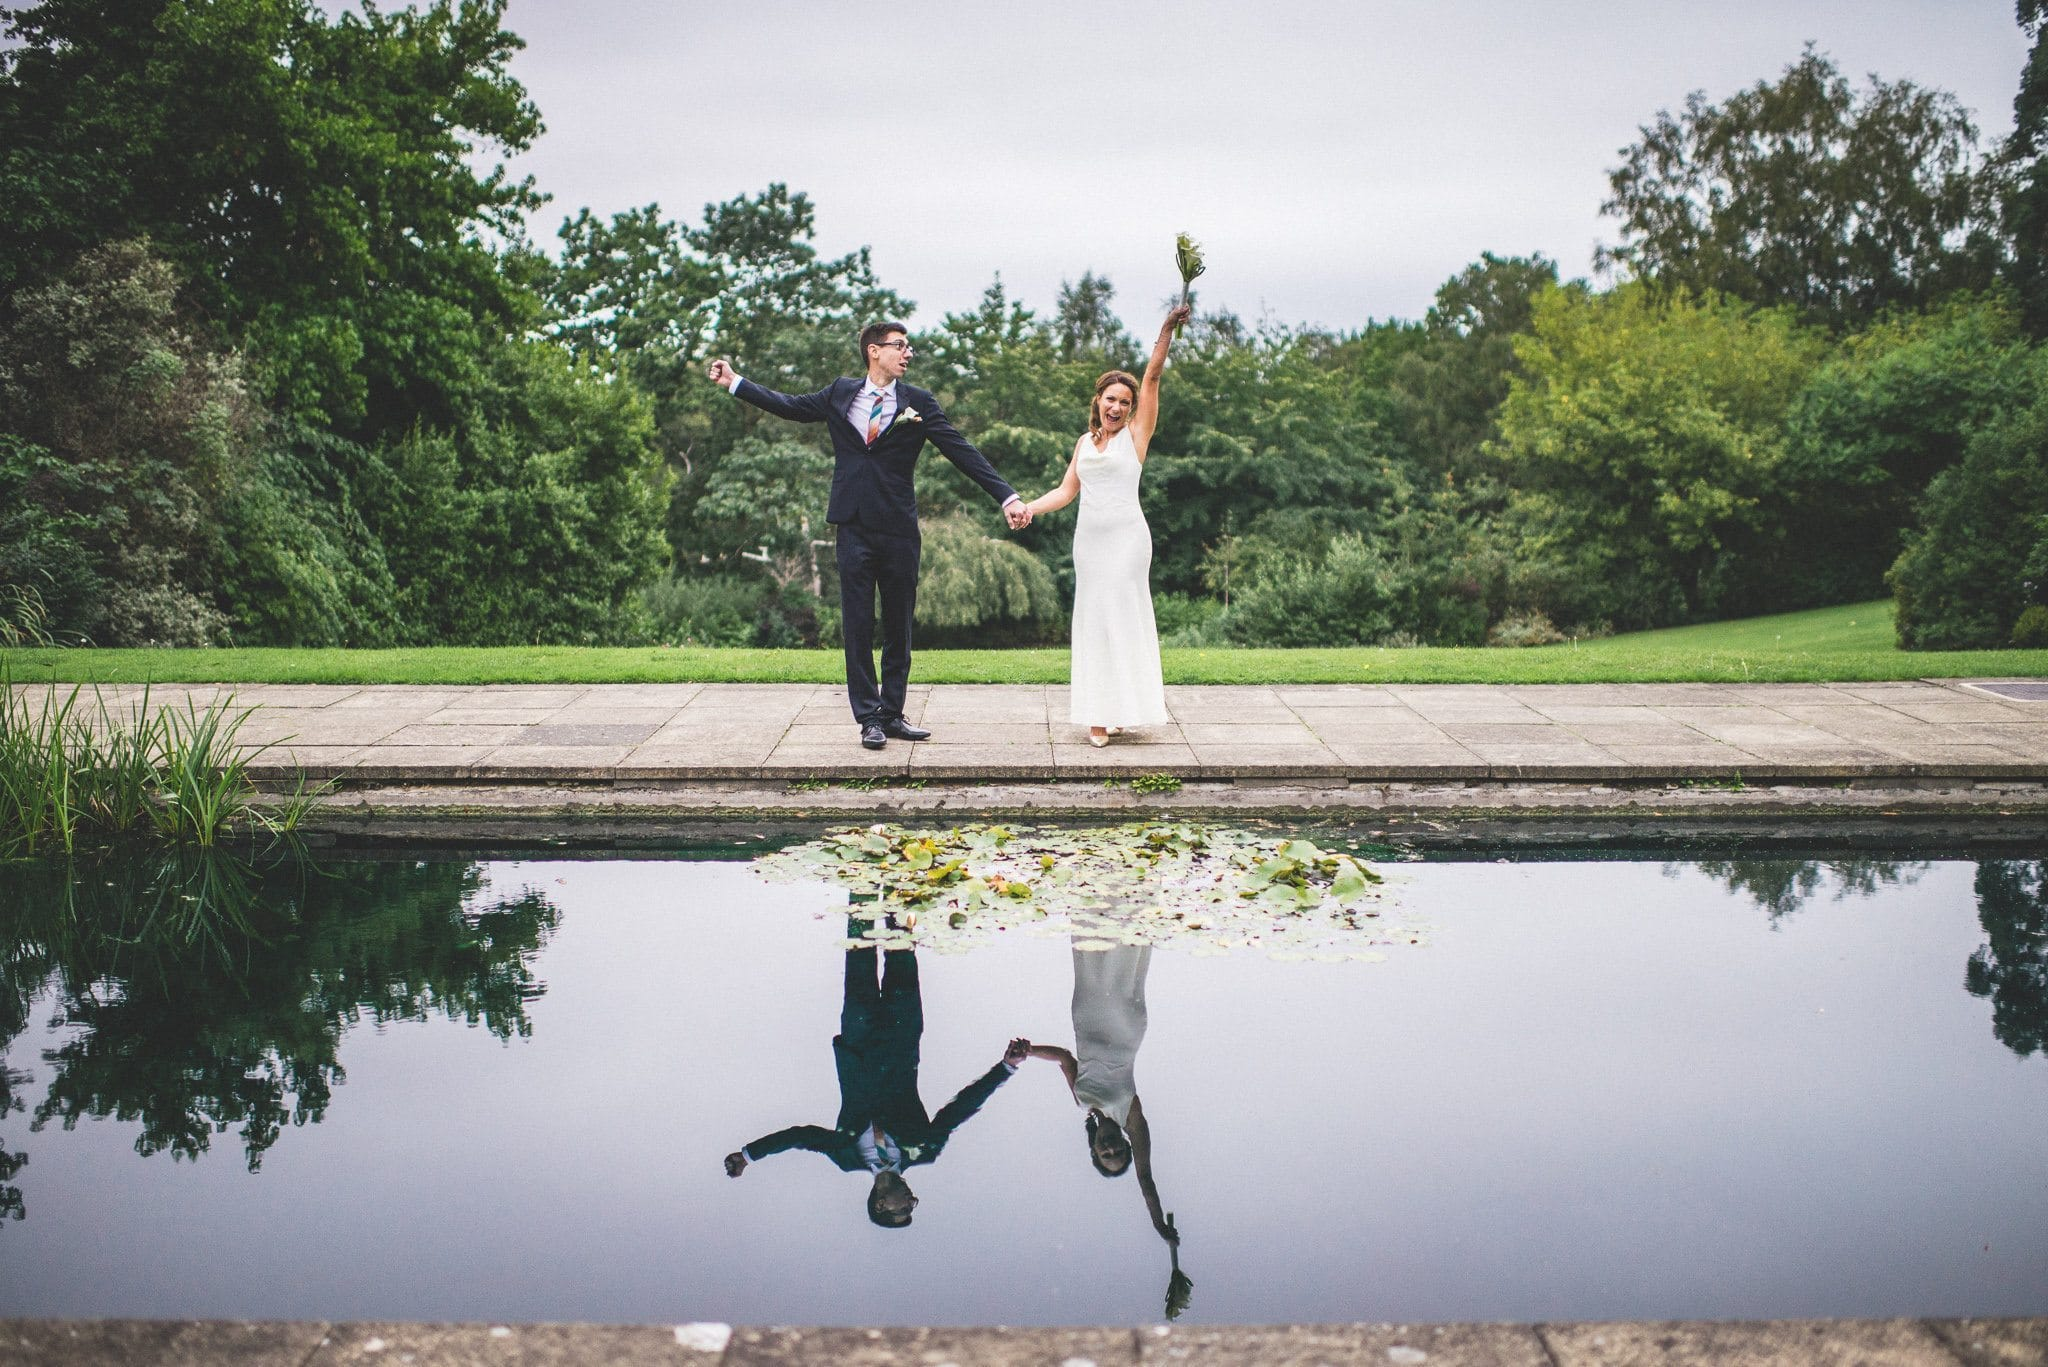 That 'just married' feeling! Marco and Ilaria punch the air with excitement at the edge of the ornamental pond